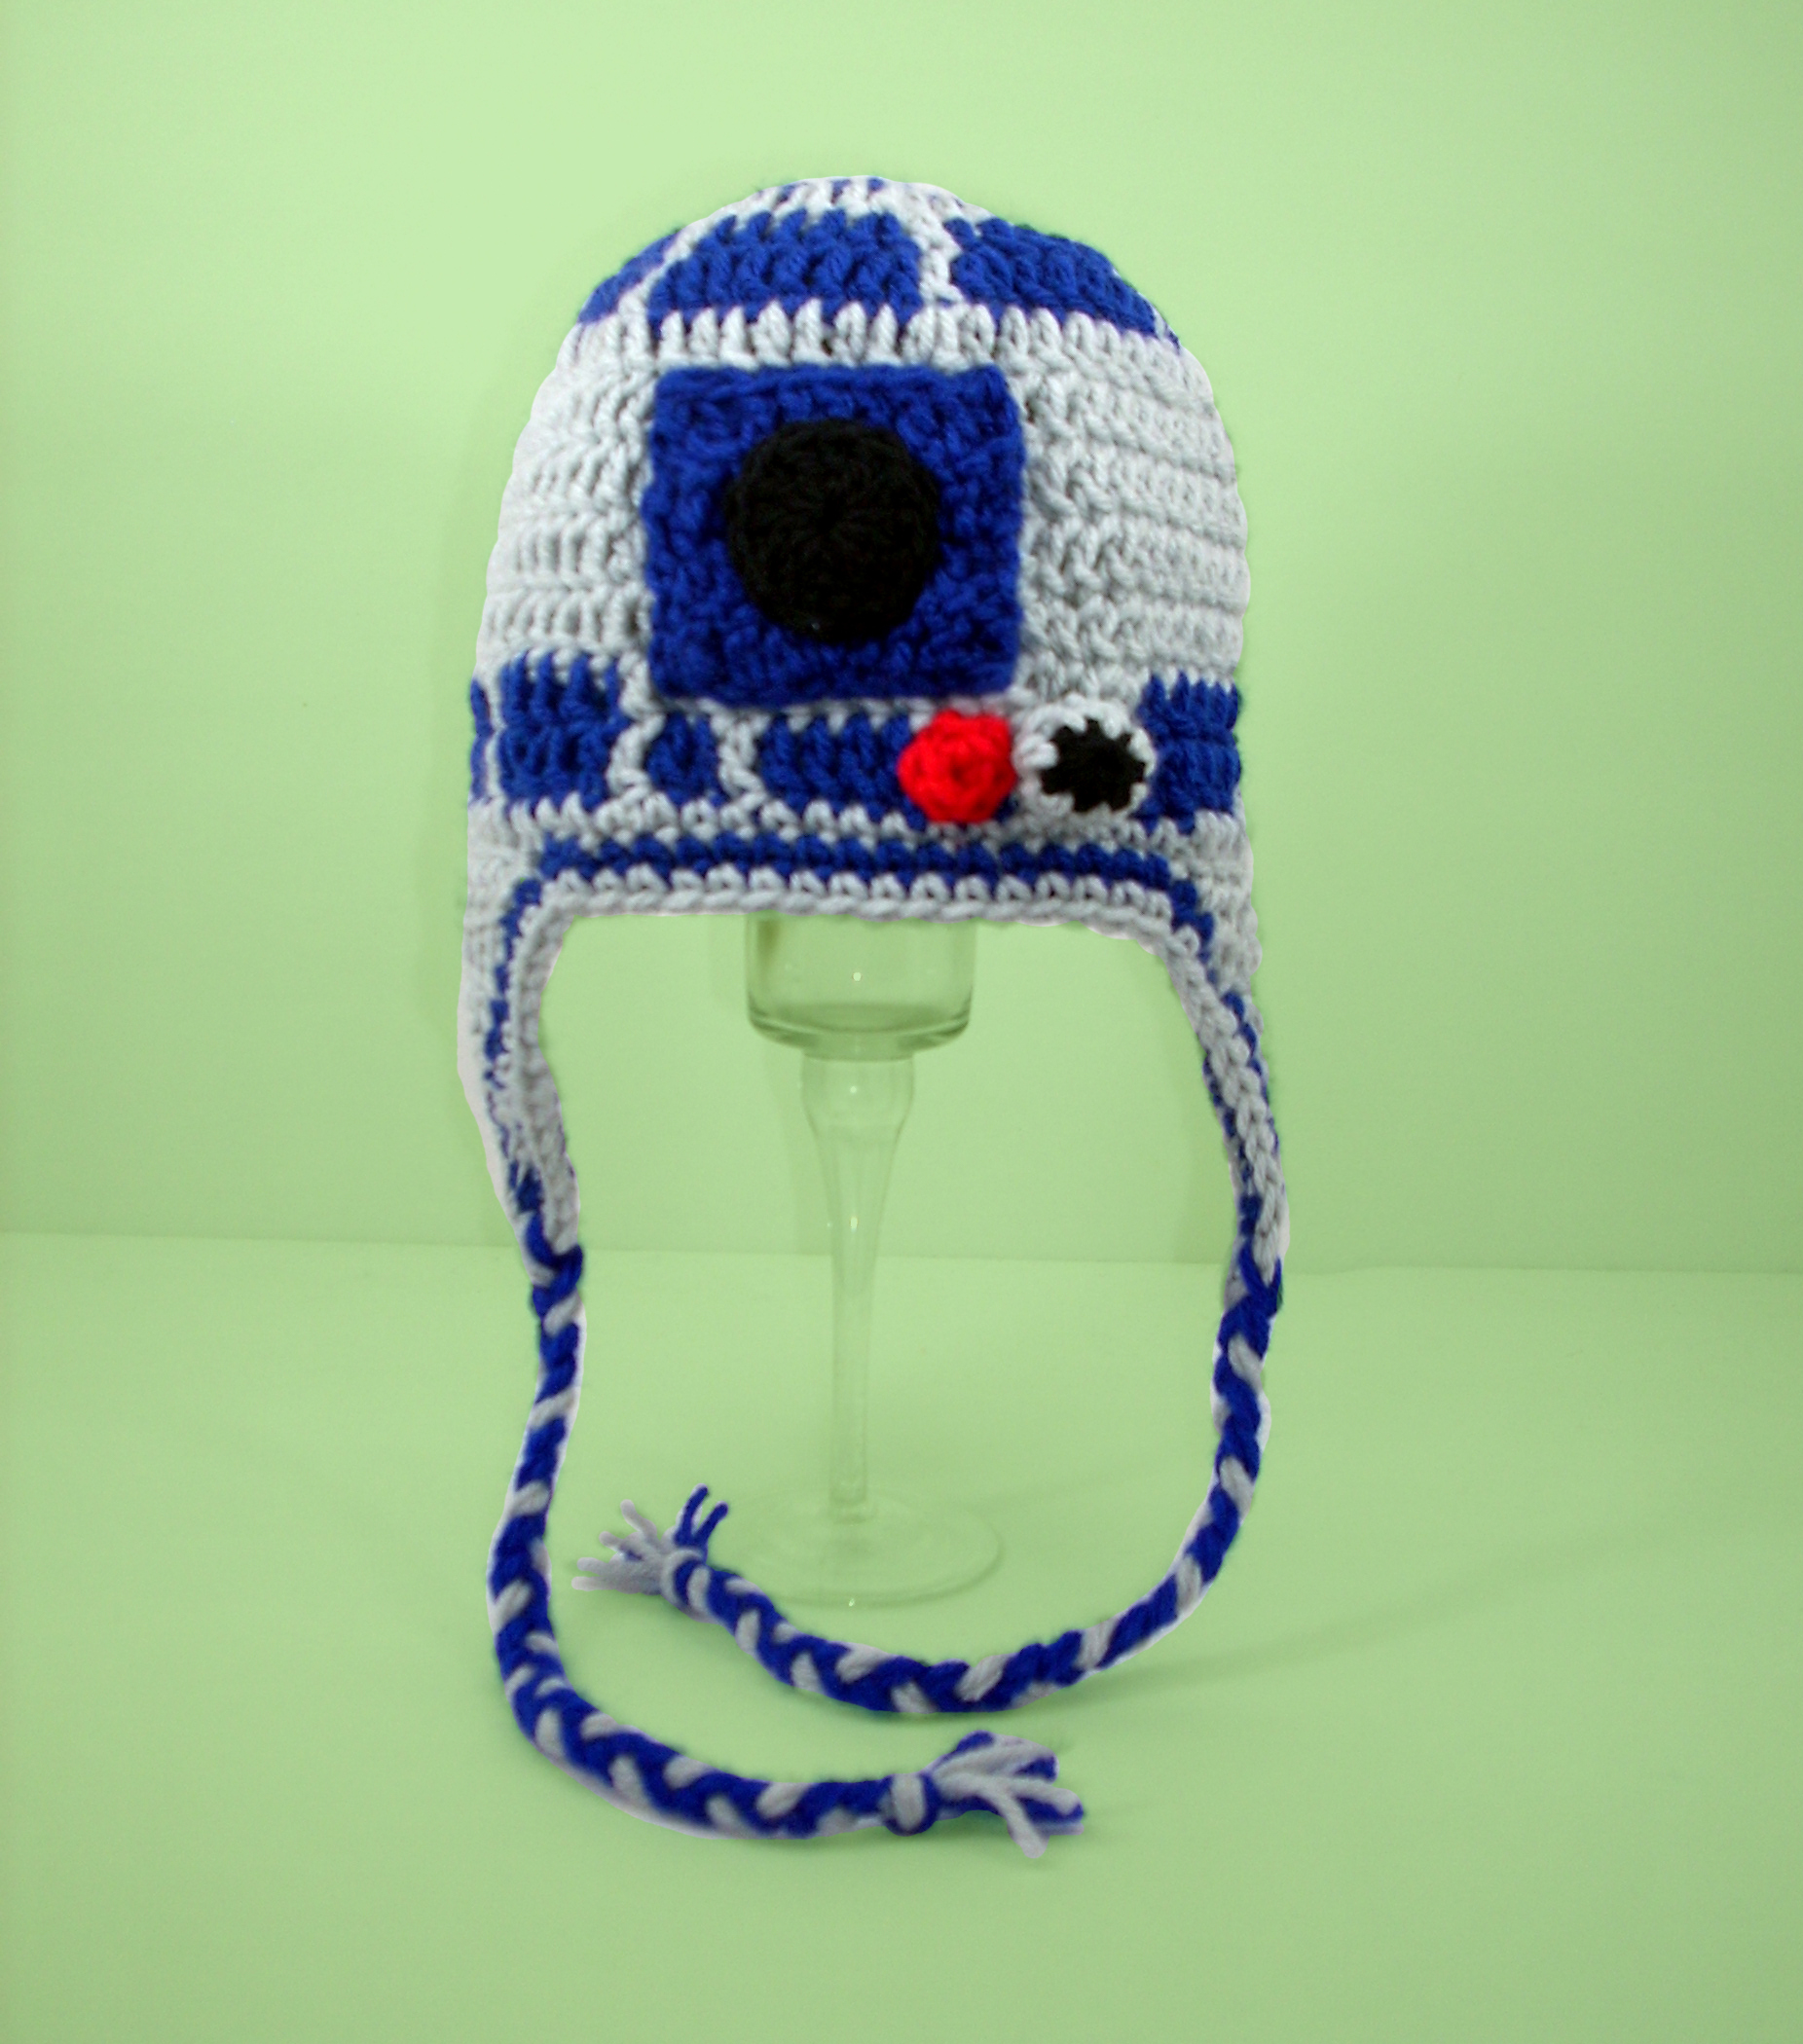 R2D2 Earflap Hat from Star Wars - Click Image to Close